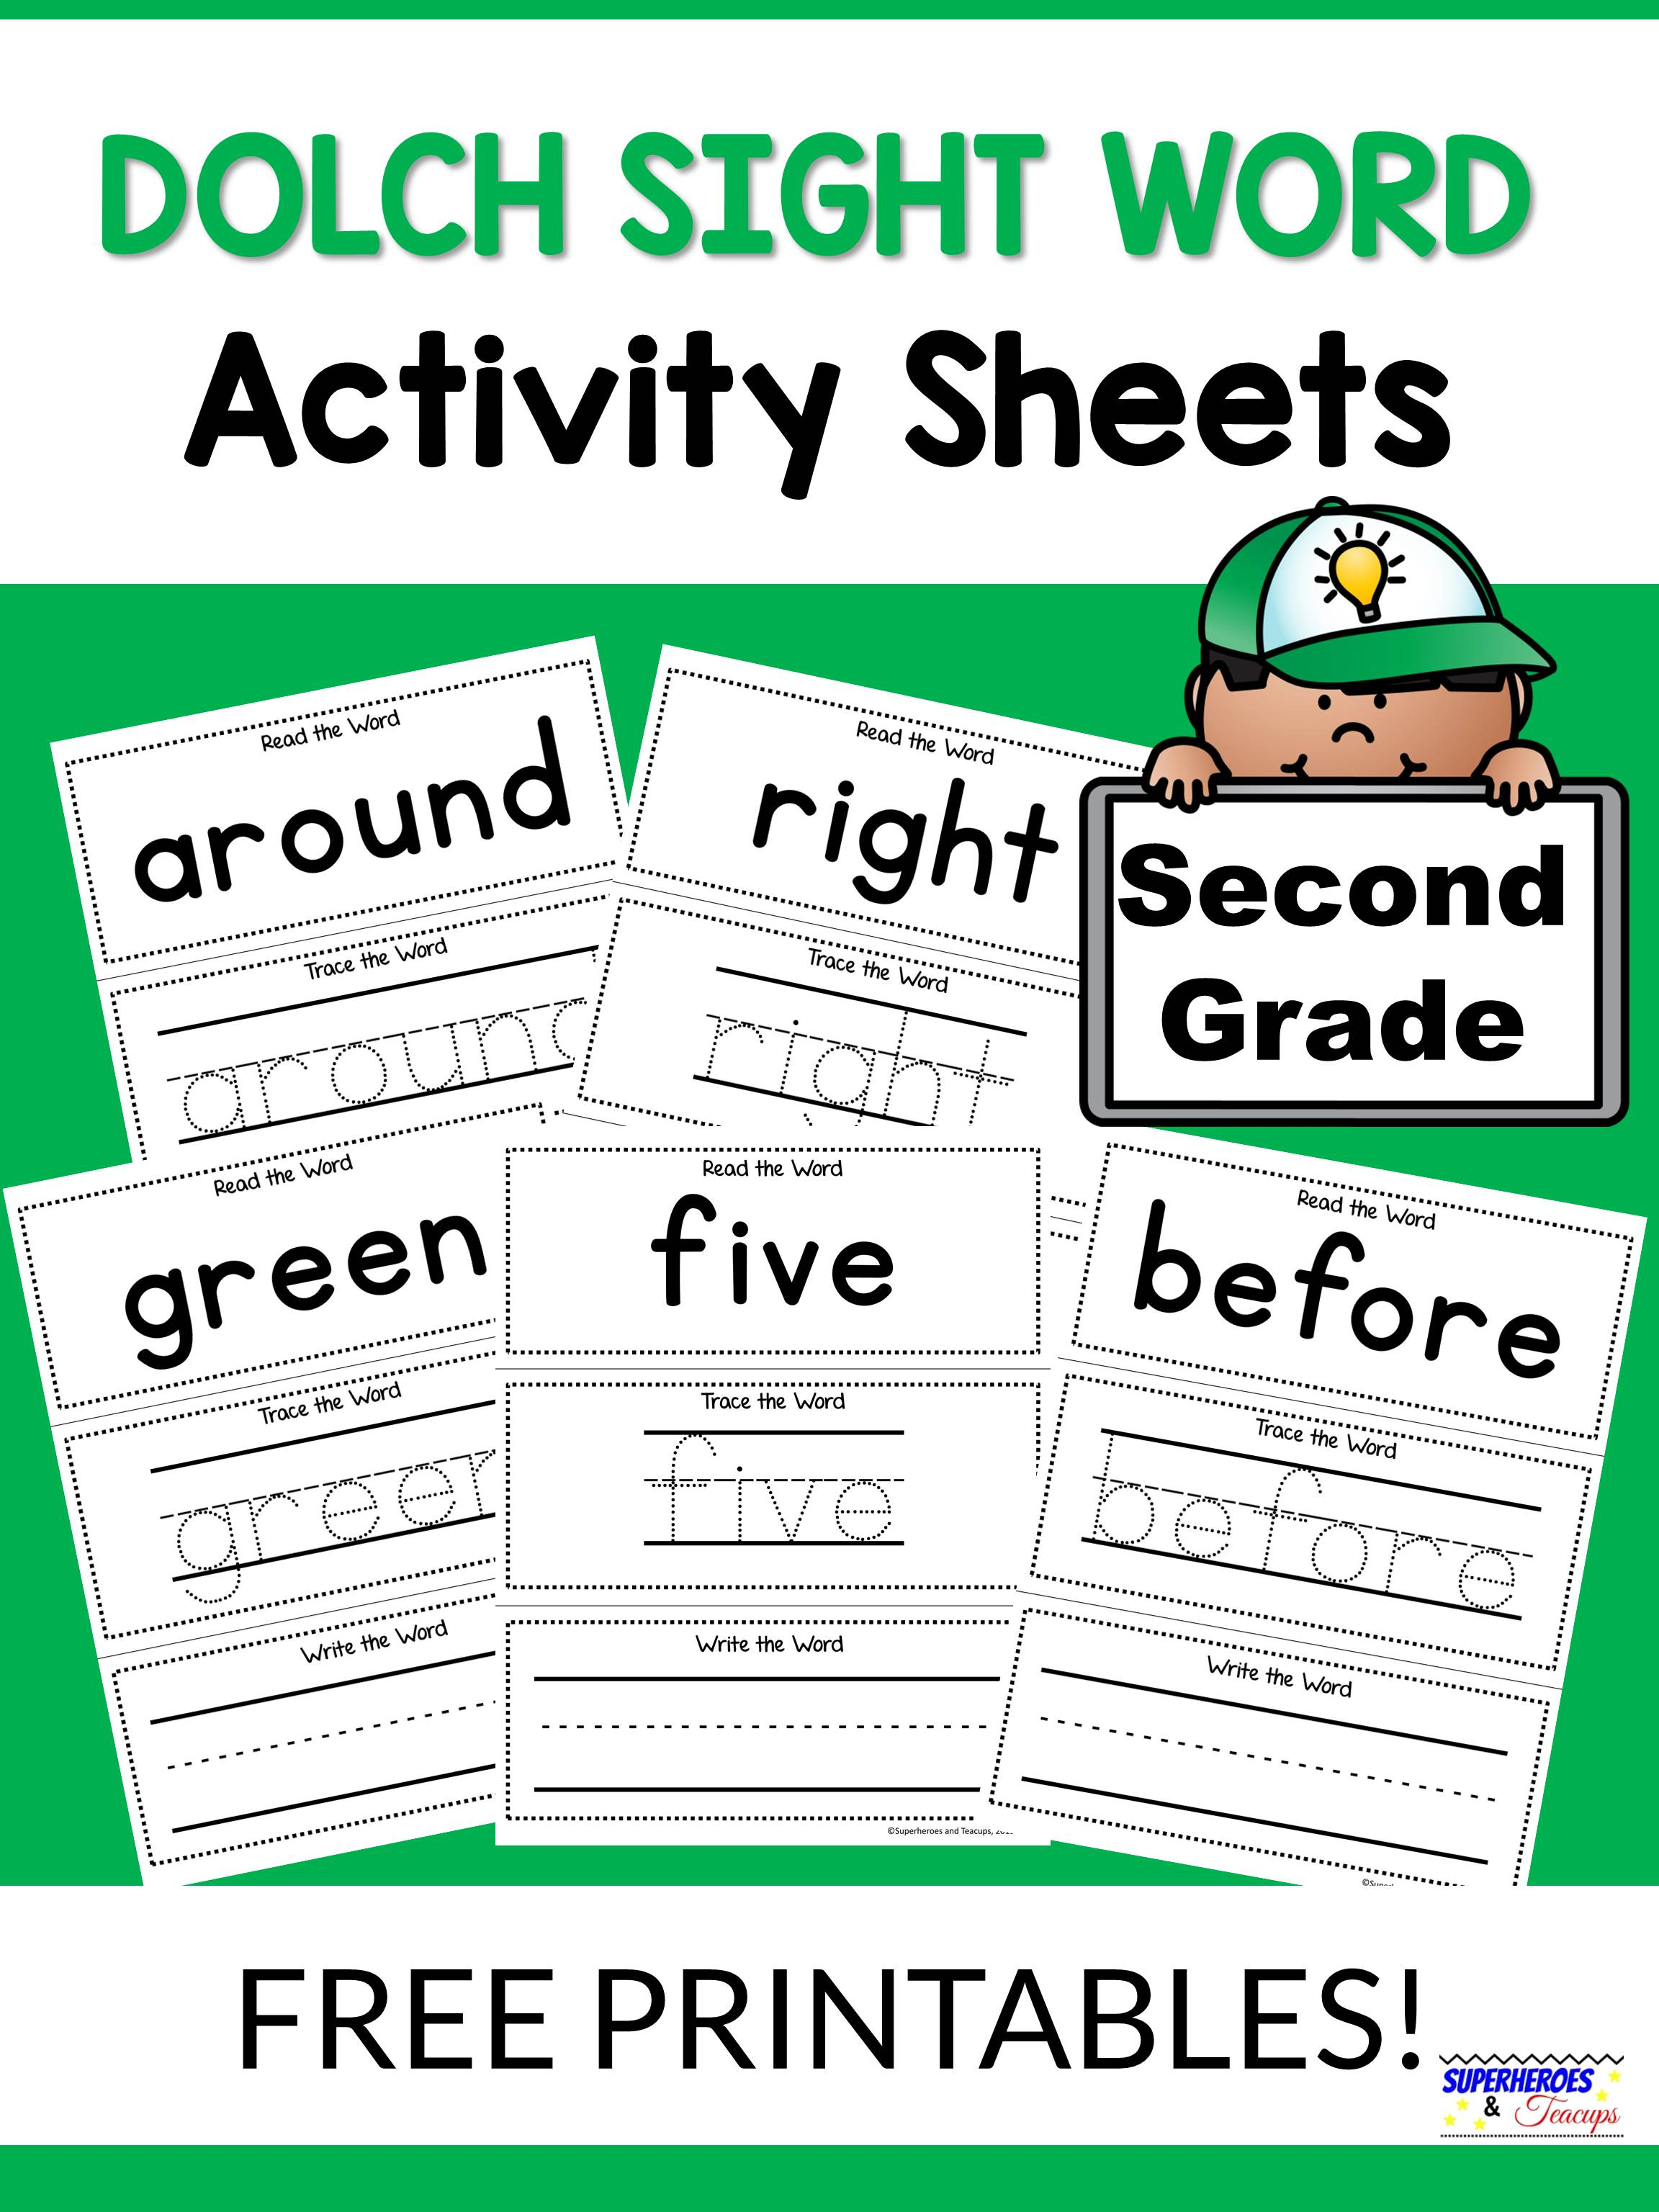 Second Grade Dolch Sight Word Activity Sheets